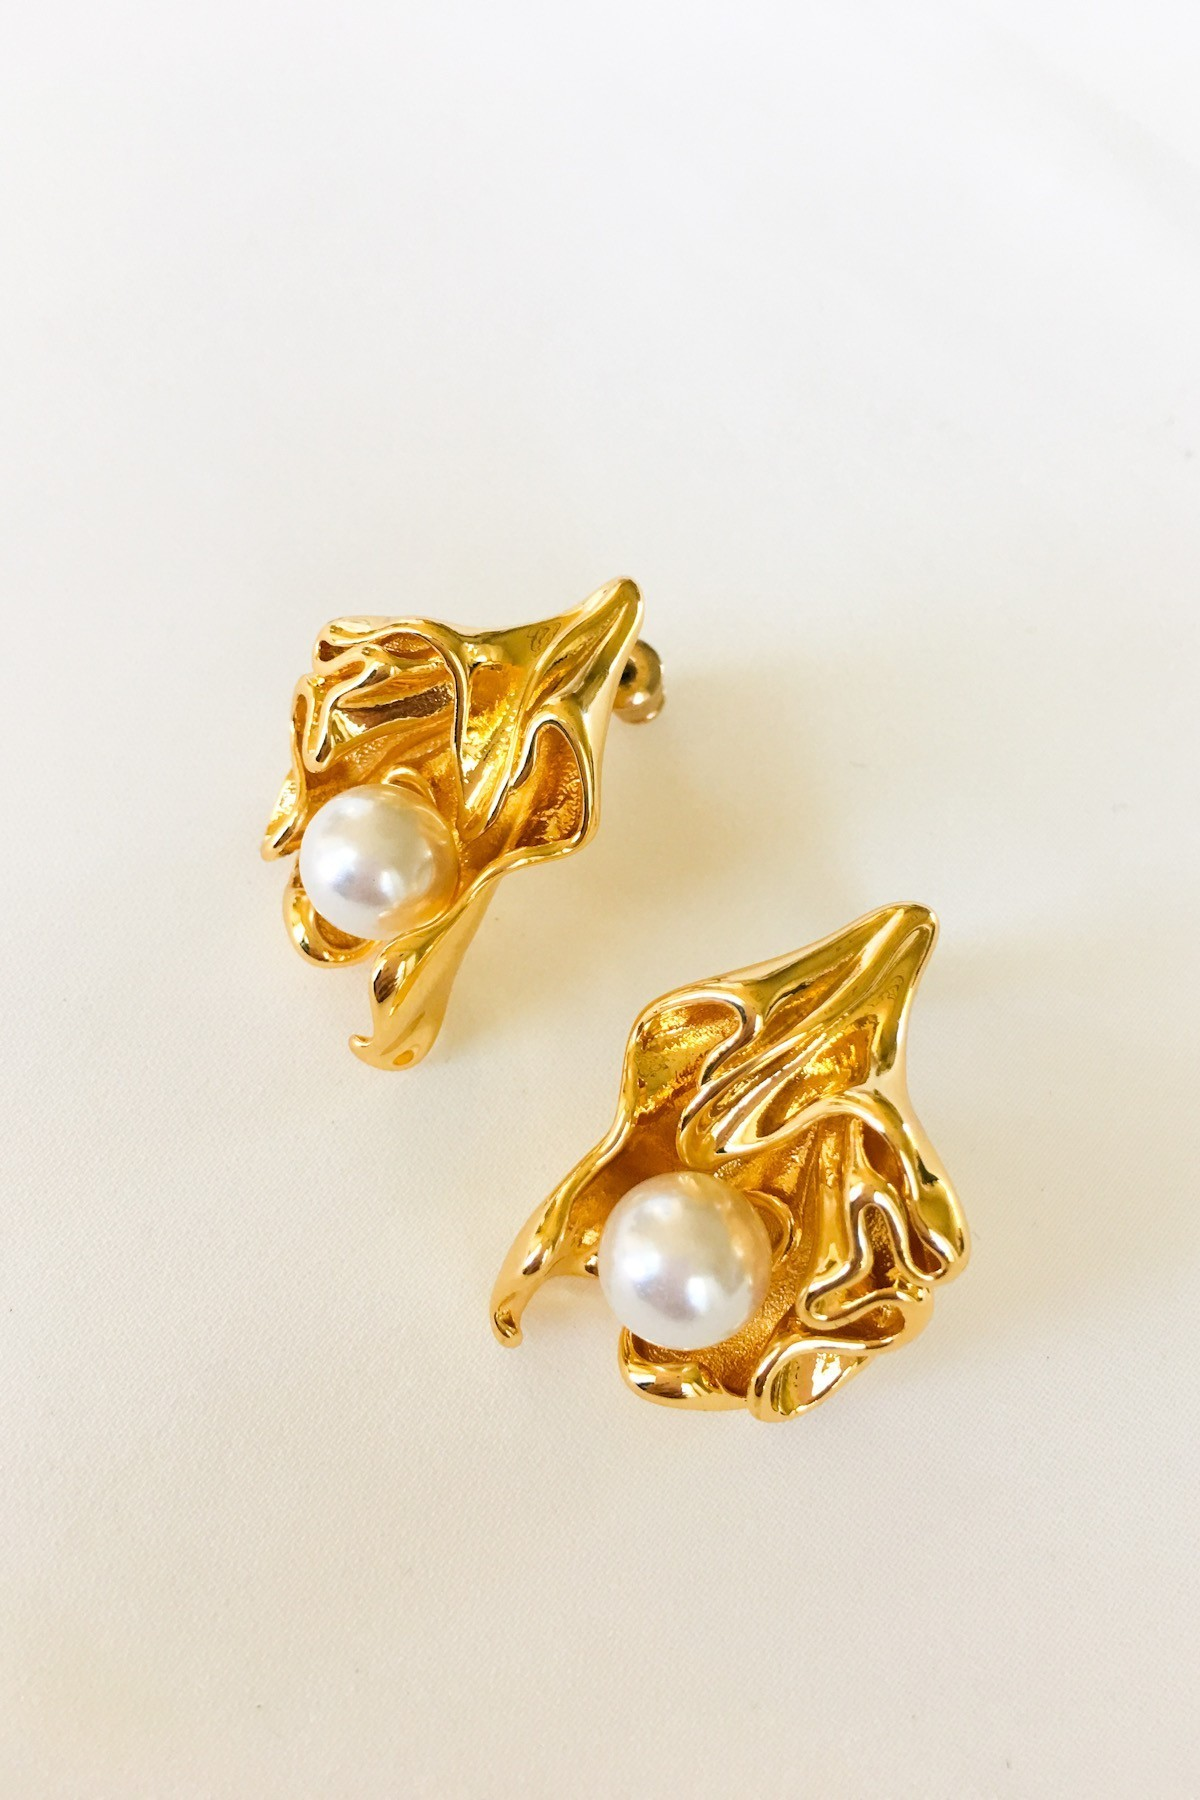 SKYE San Francisco SF California shop ethical sustainable modern minimalist luxury women French Parisian chic jewelry Spring 2020 Marseille 18K Gold Pearl Earrings